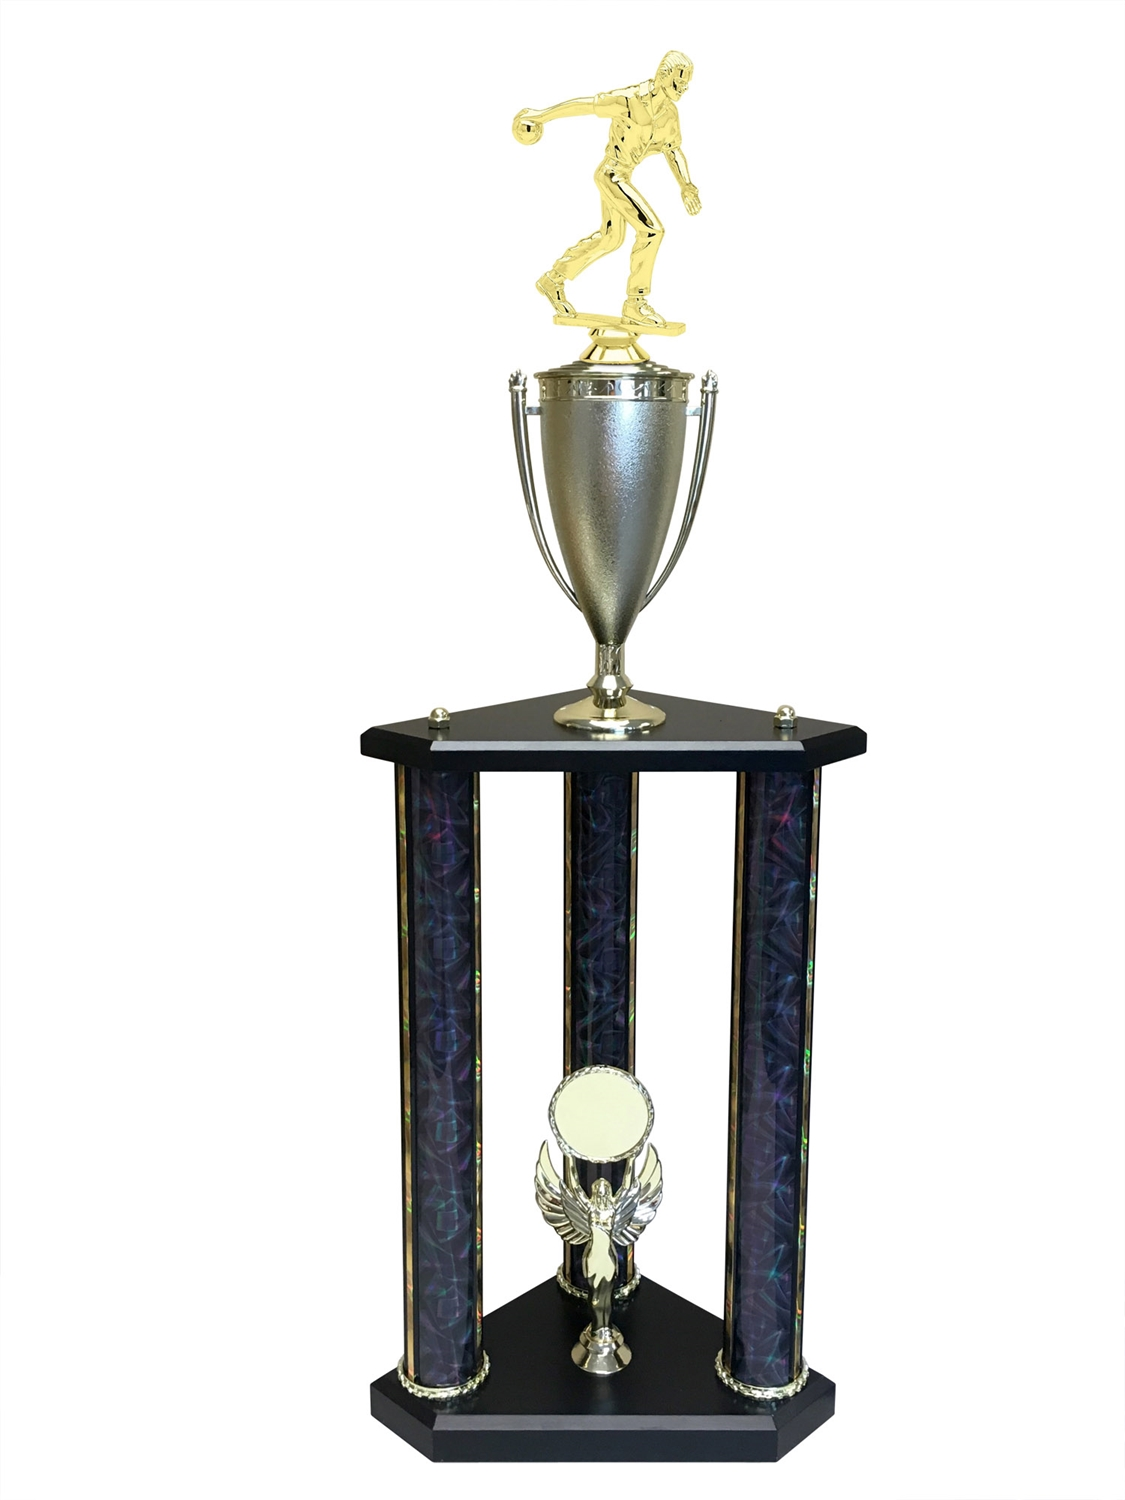 Male Candlestick Bowling Trophy Available in 11 colors & 3 sizes